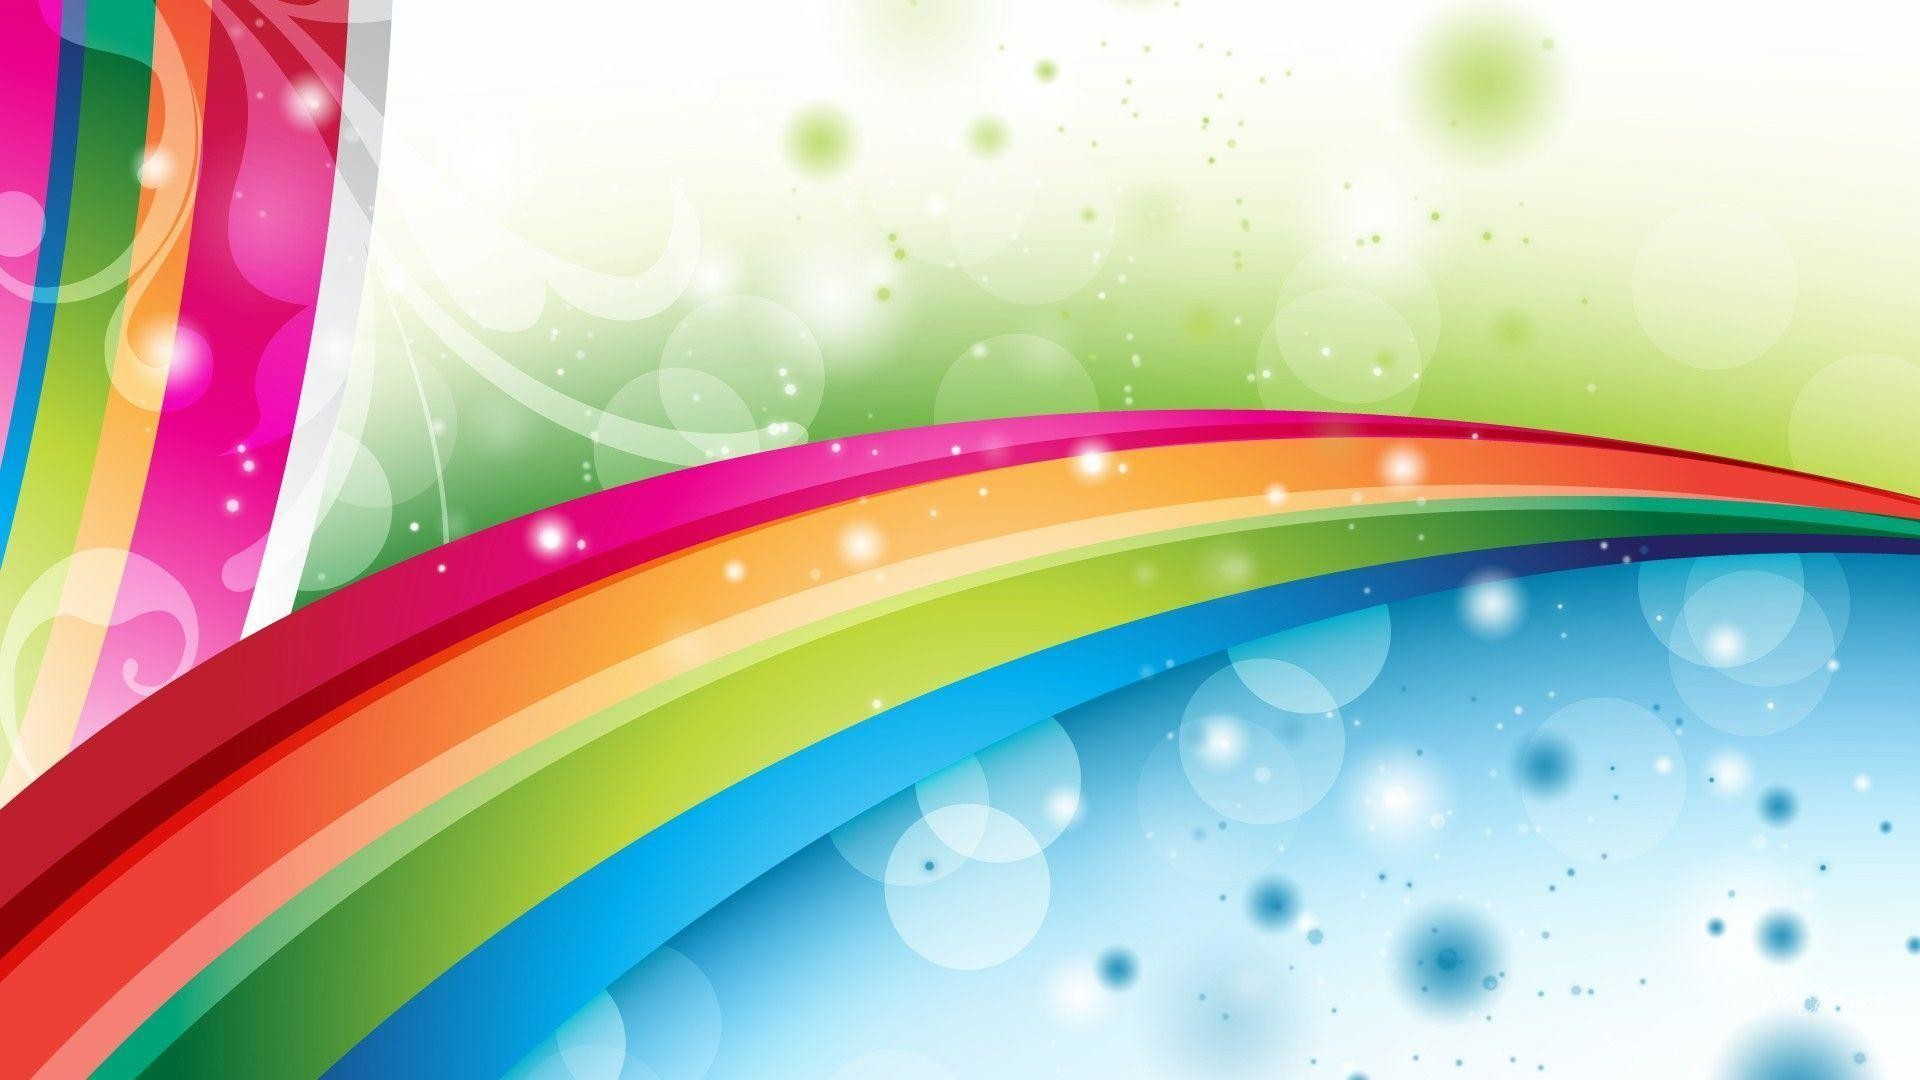 Res: 1920x1080, Abstract Rainbow Wallpaper Hd 26 6809 Images HD Wallpapers .